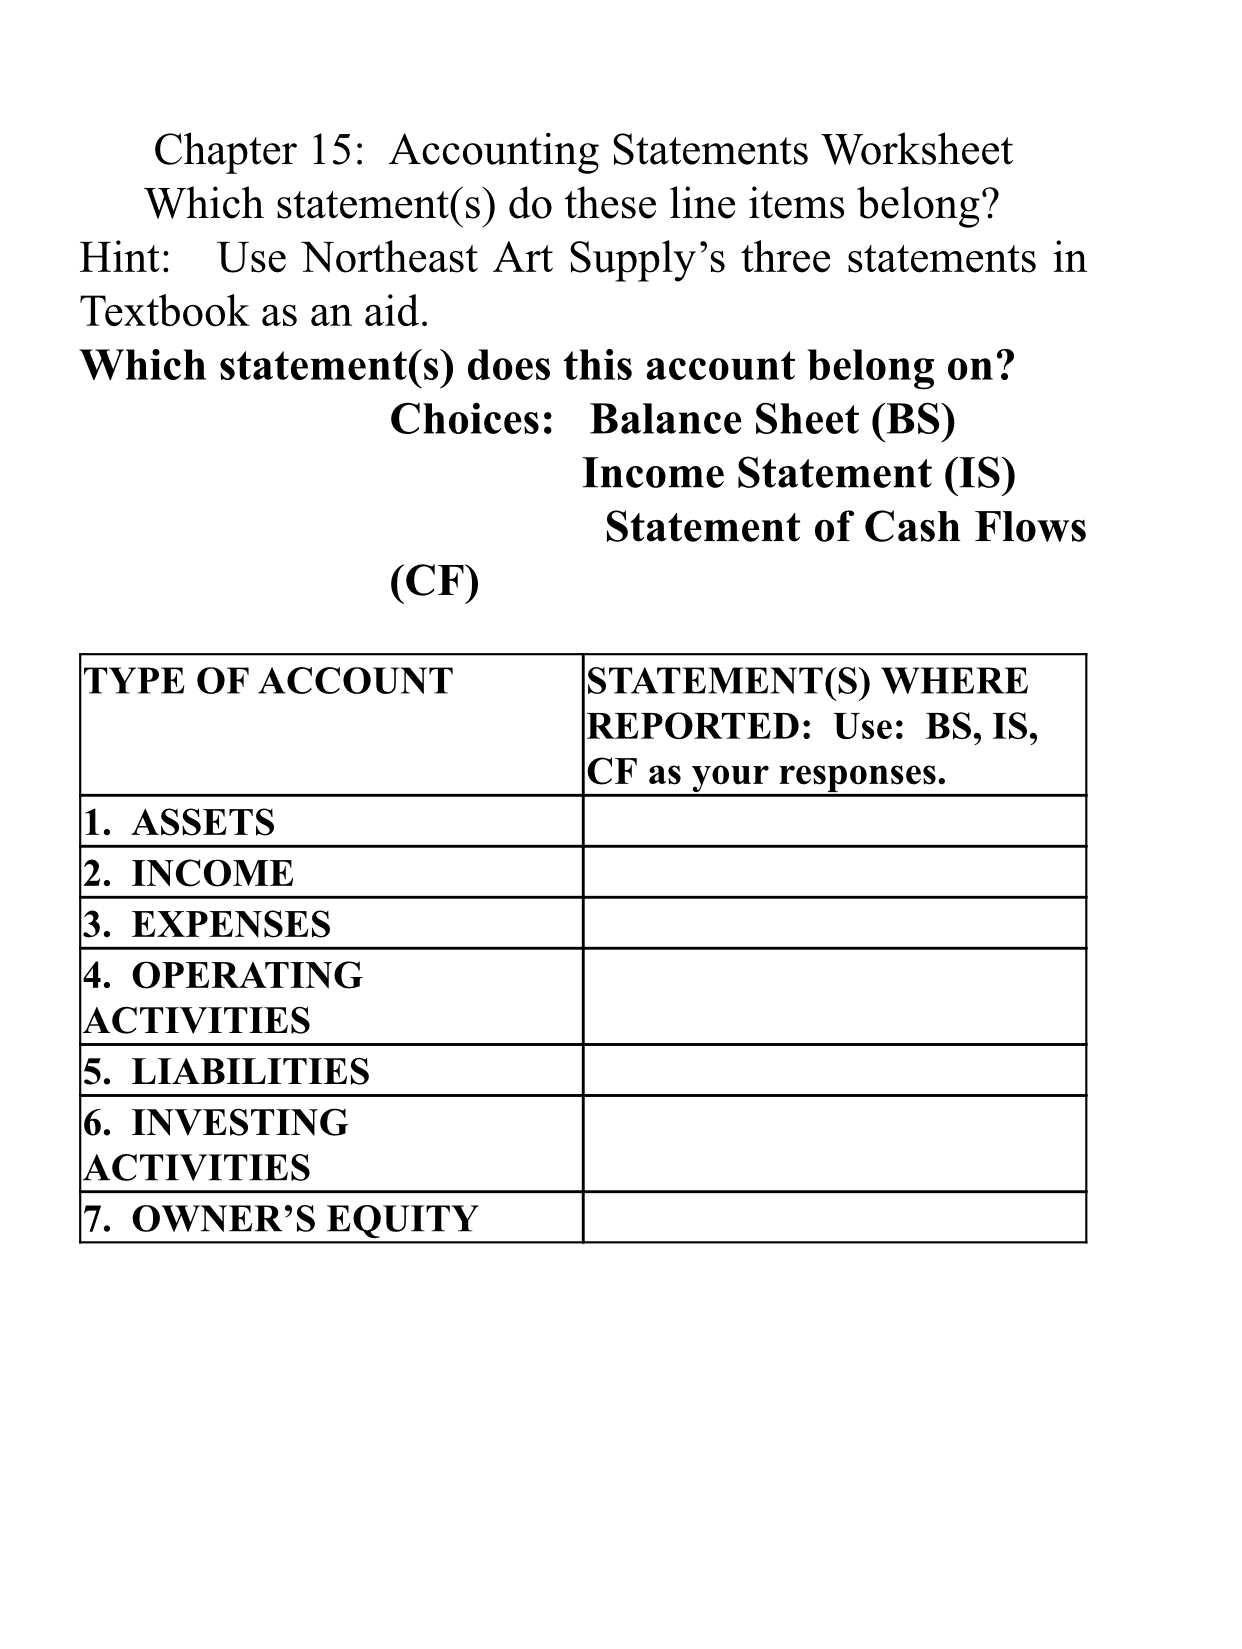 Answered Chapter 15 Accounting Statements